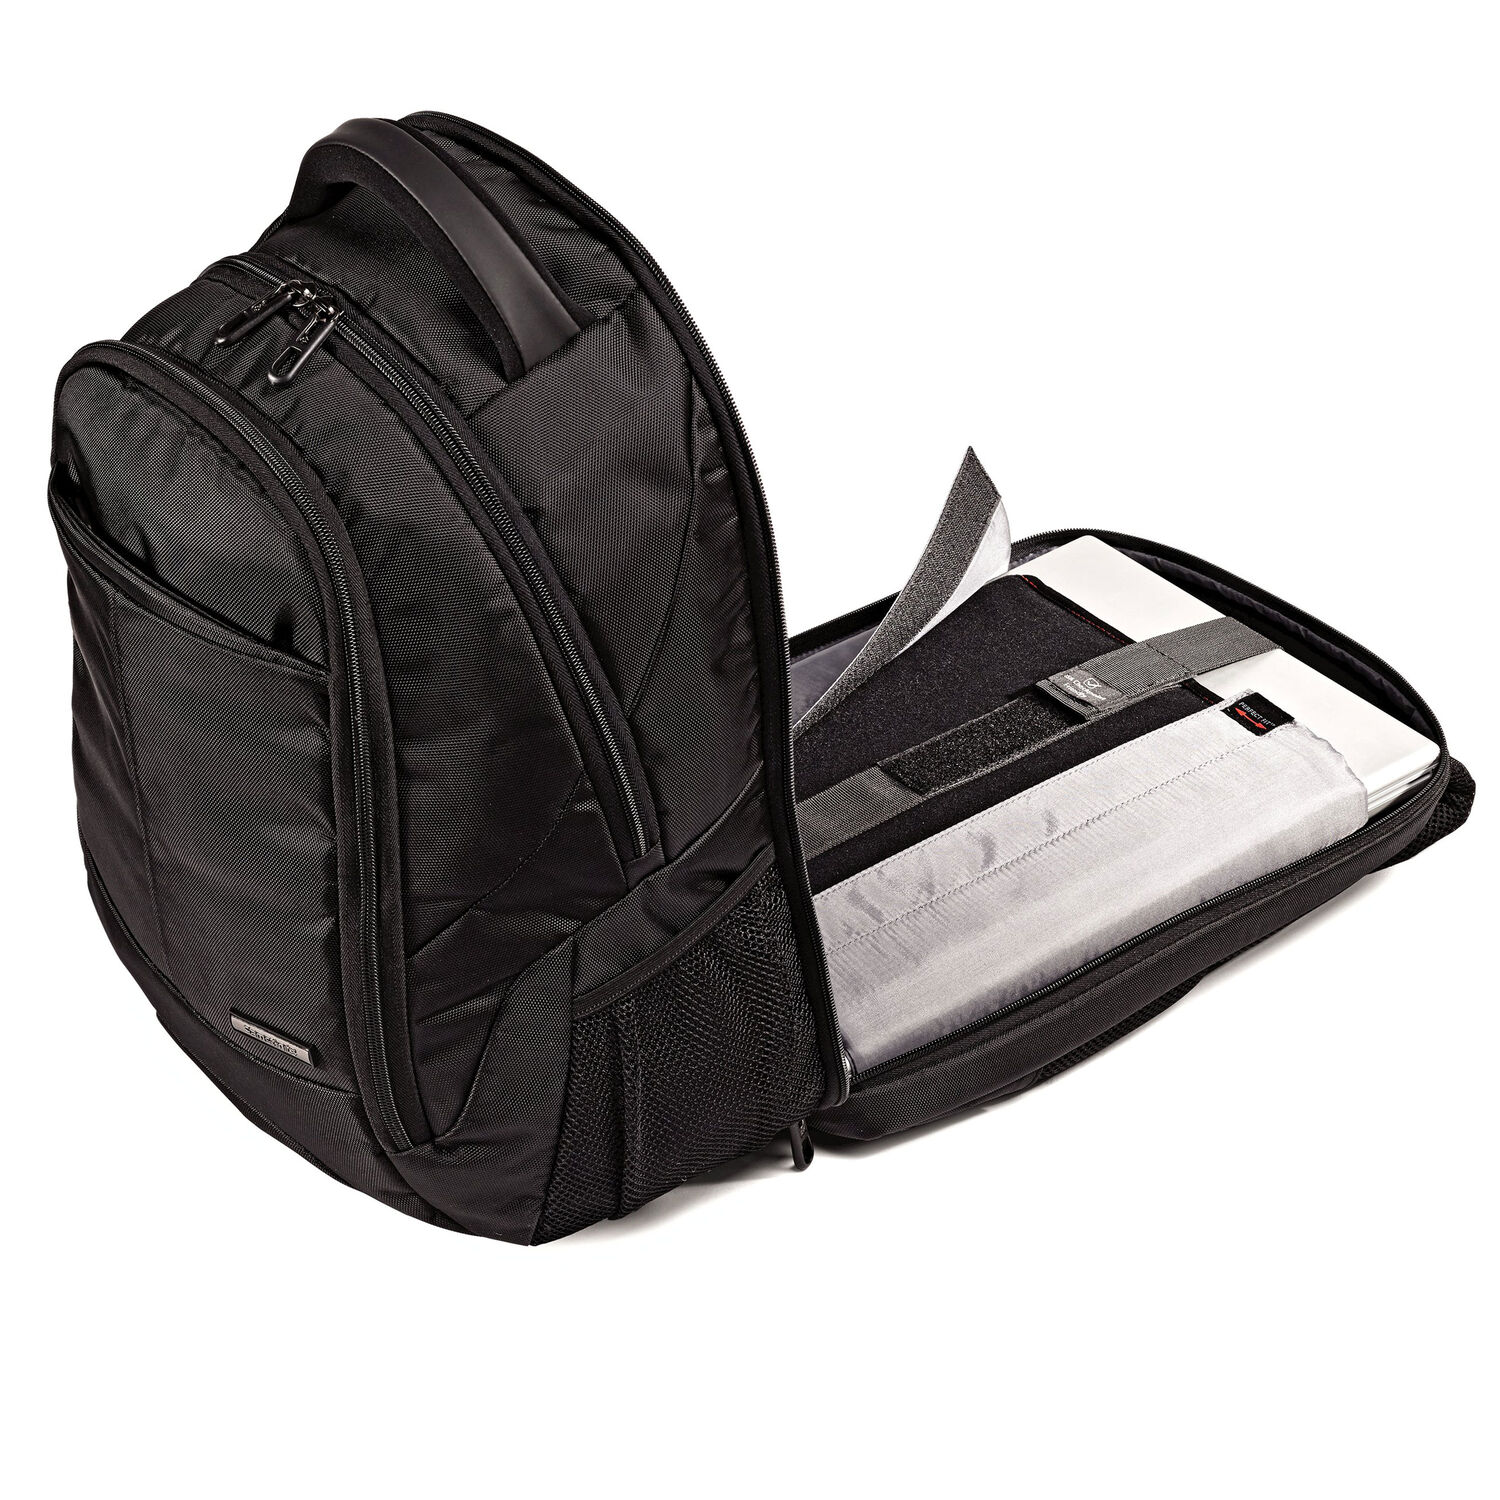 b3b2af49f Samsonite Classic Business Perfect Fit Backpack in the color Black.